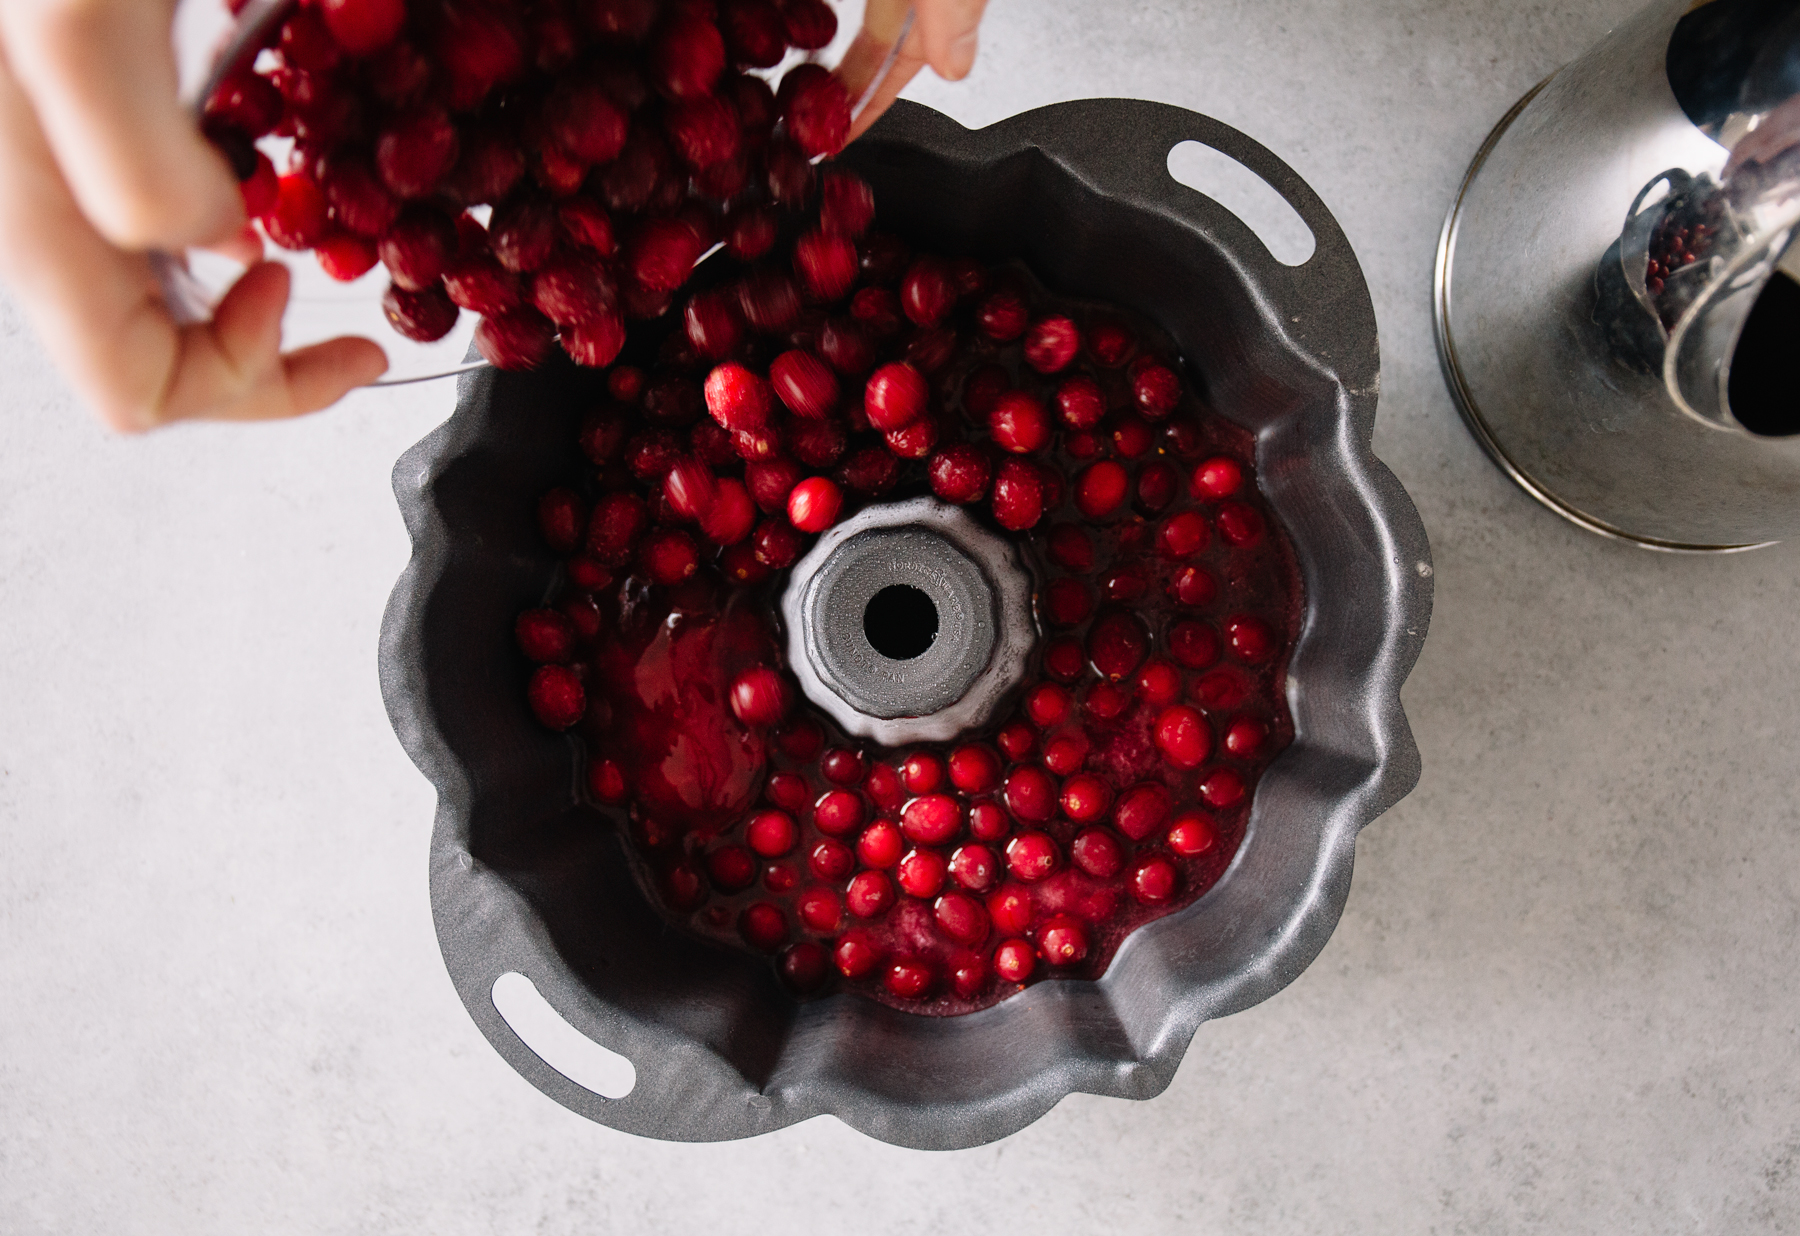 FOODSTUFF_CRANBERRY-ICE_STEP-2-2.jpg